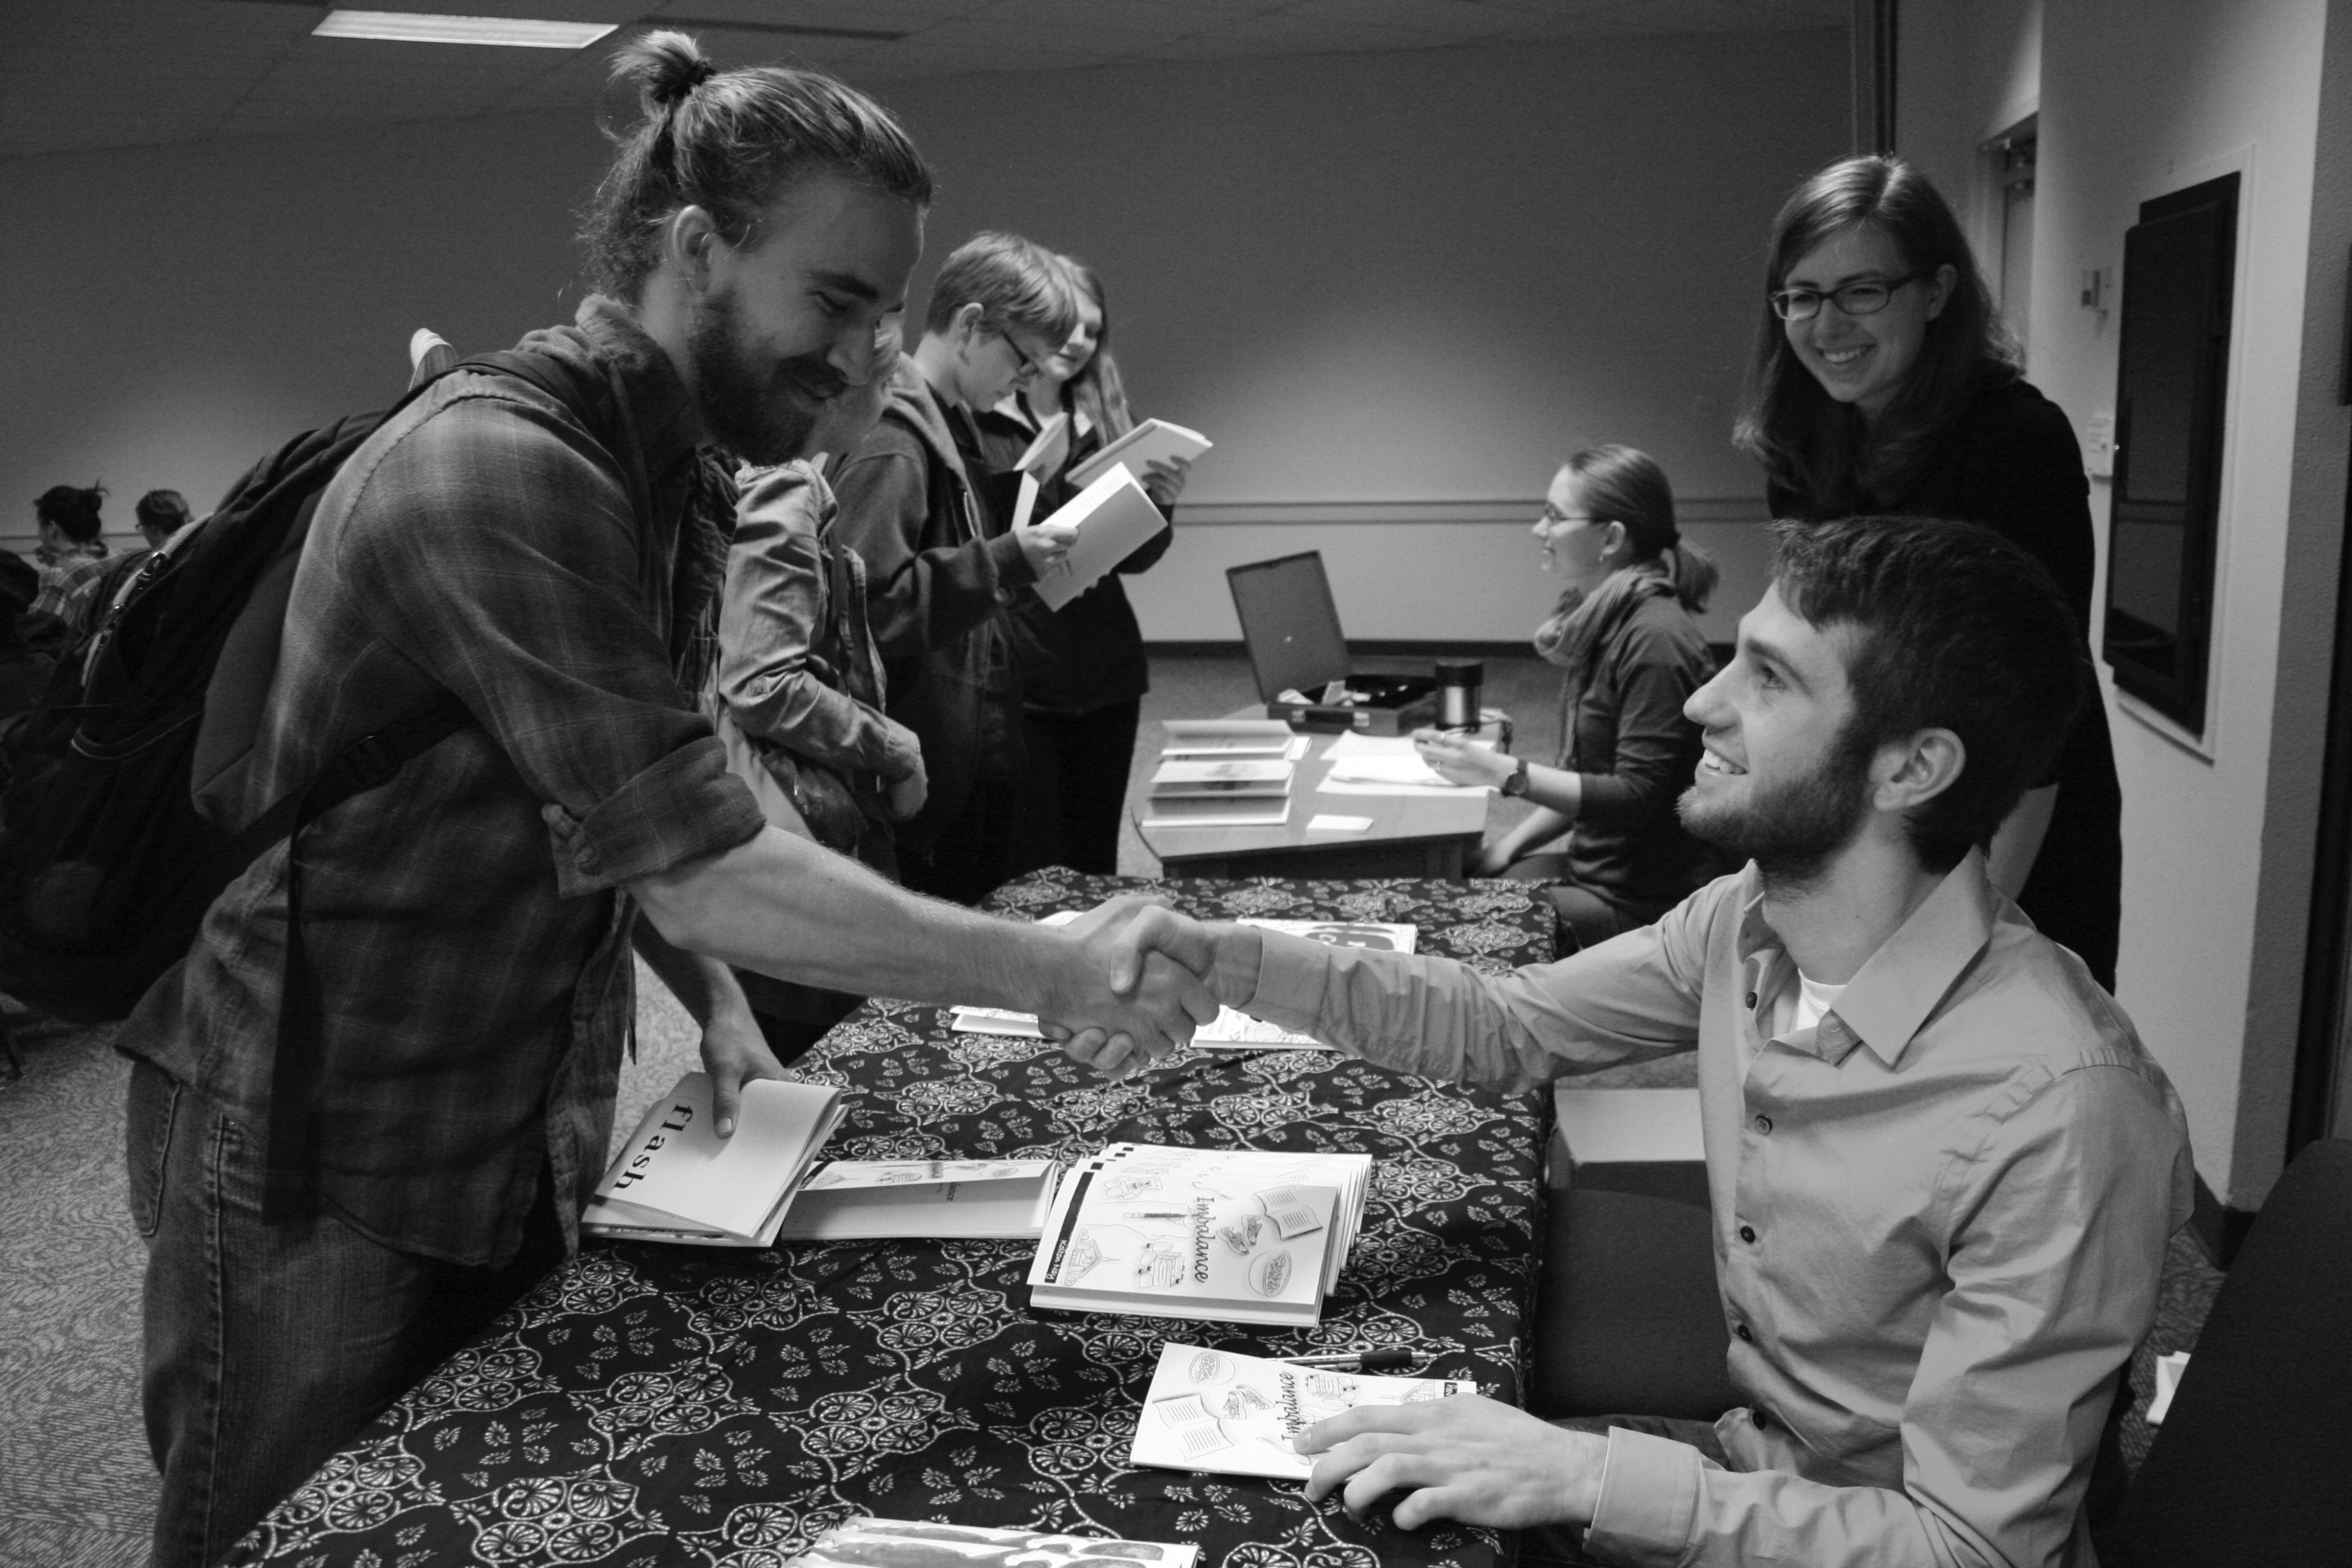 Isaiah Friesen and Kolton Nay shake hands after Nay signs his book at the Pinchpenny release party